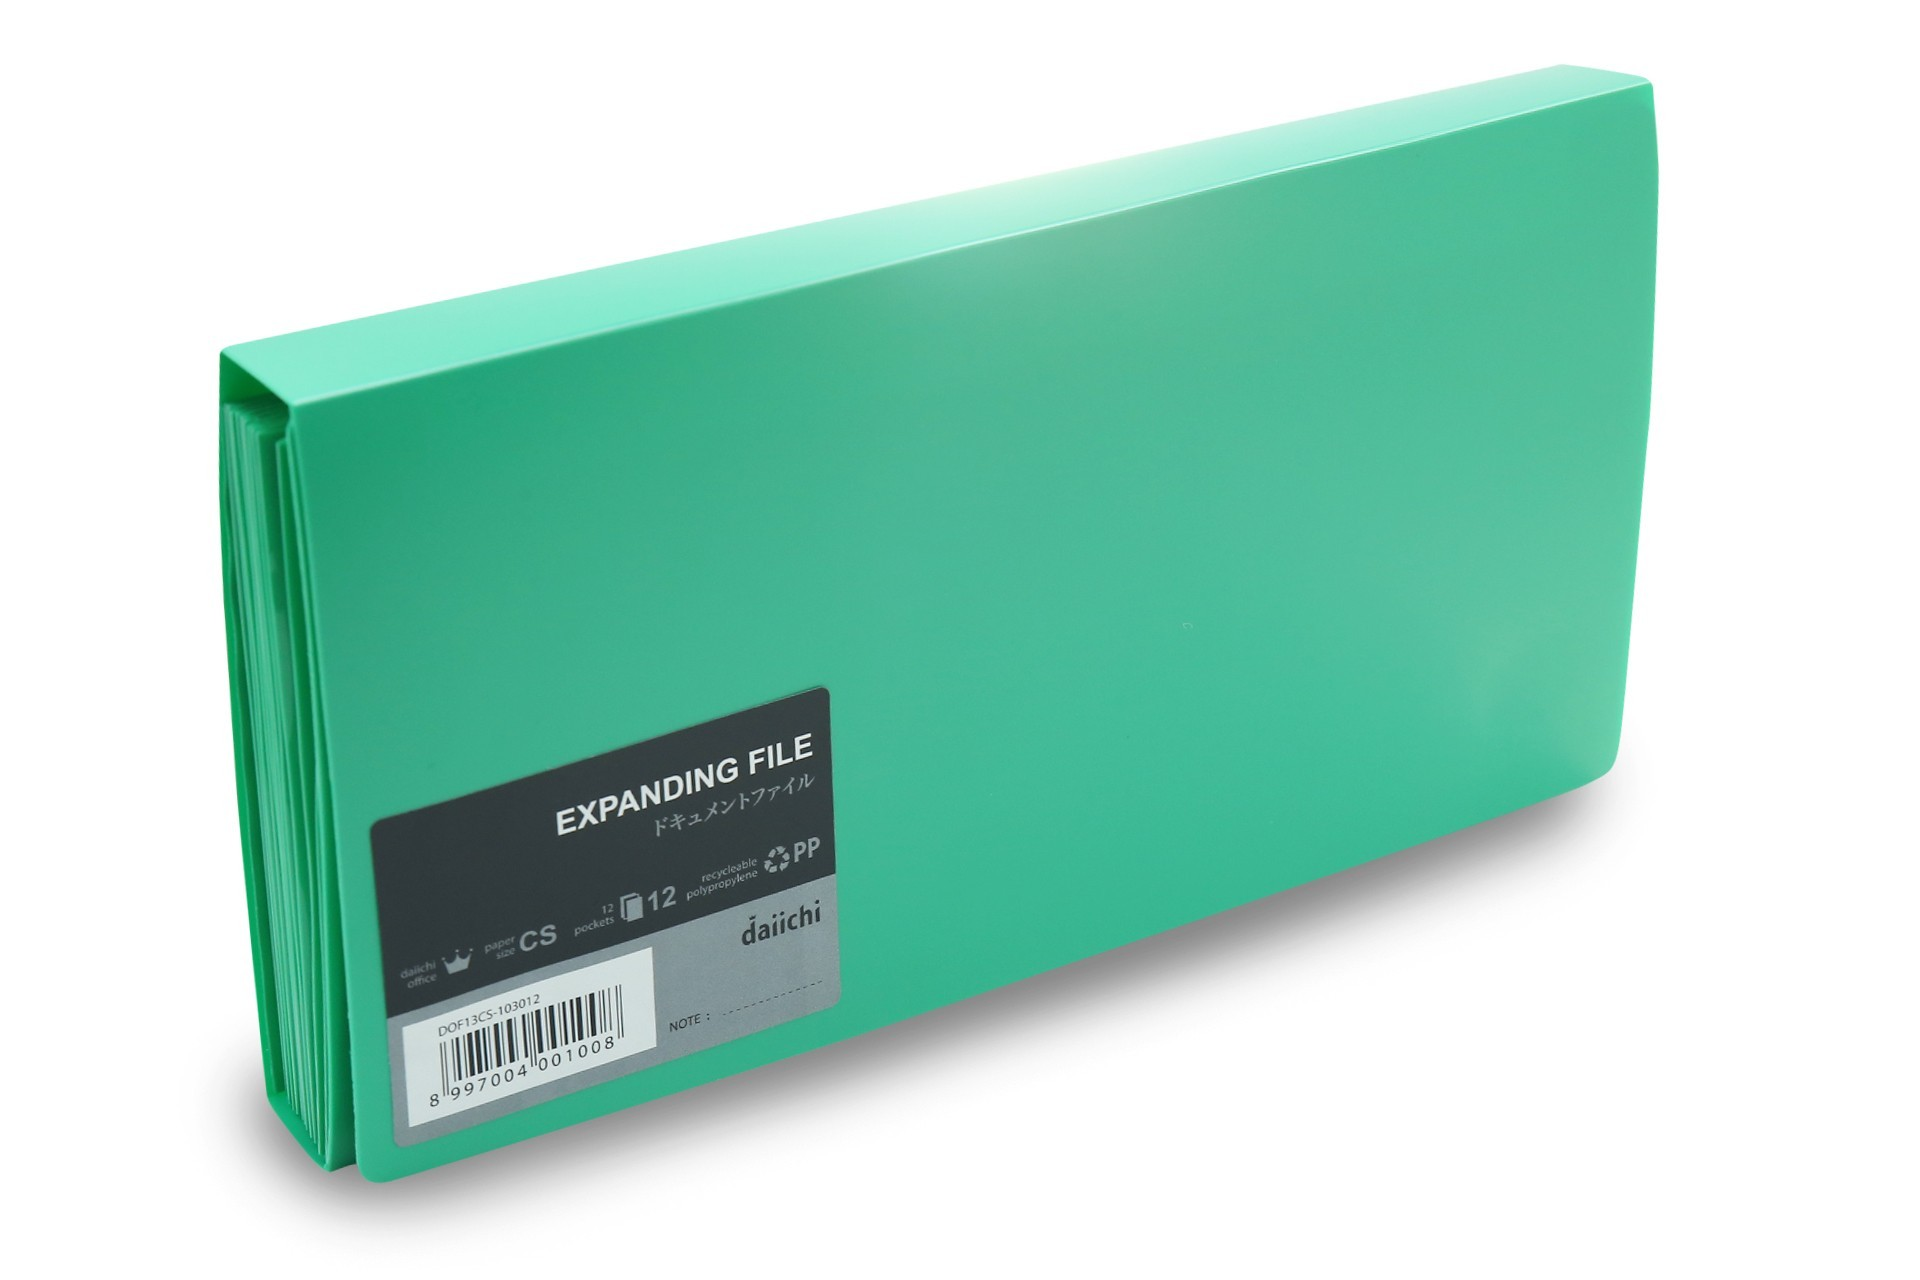 Supplier ATKDaiichi DOF13CS-103012 Expanding File CS(Giro) Green Harga Grosir